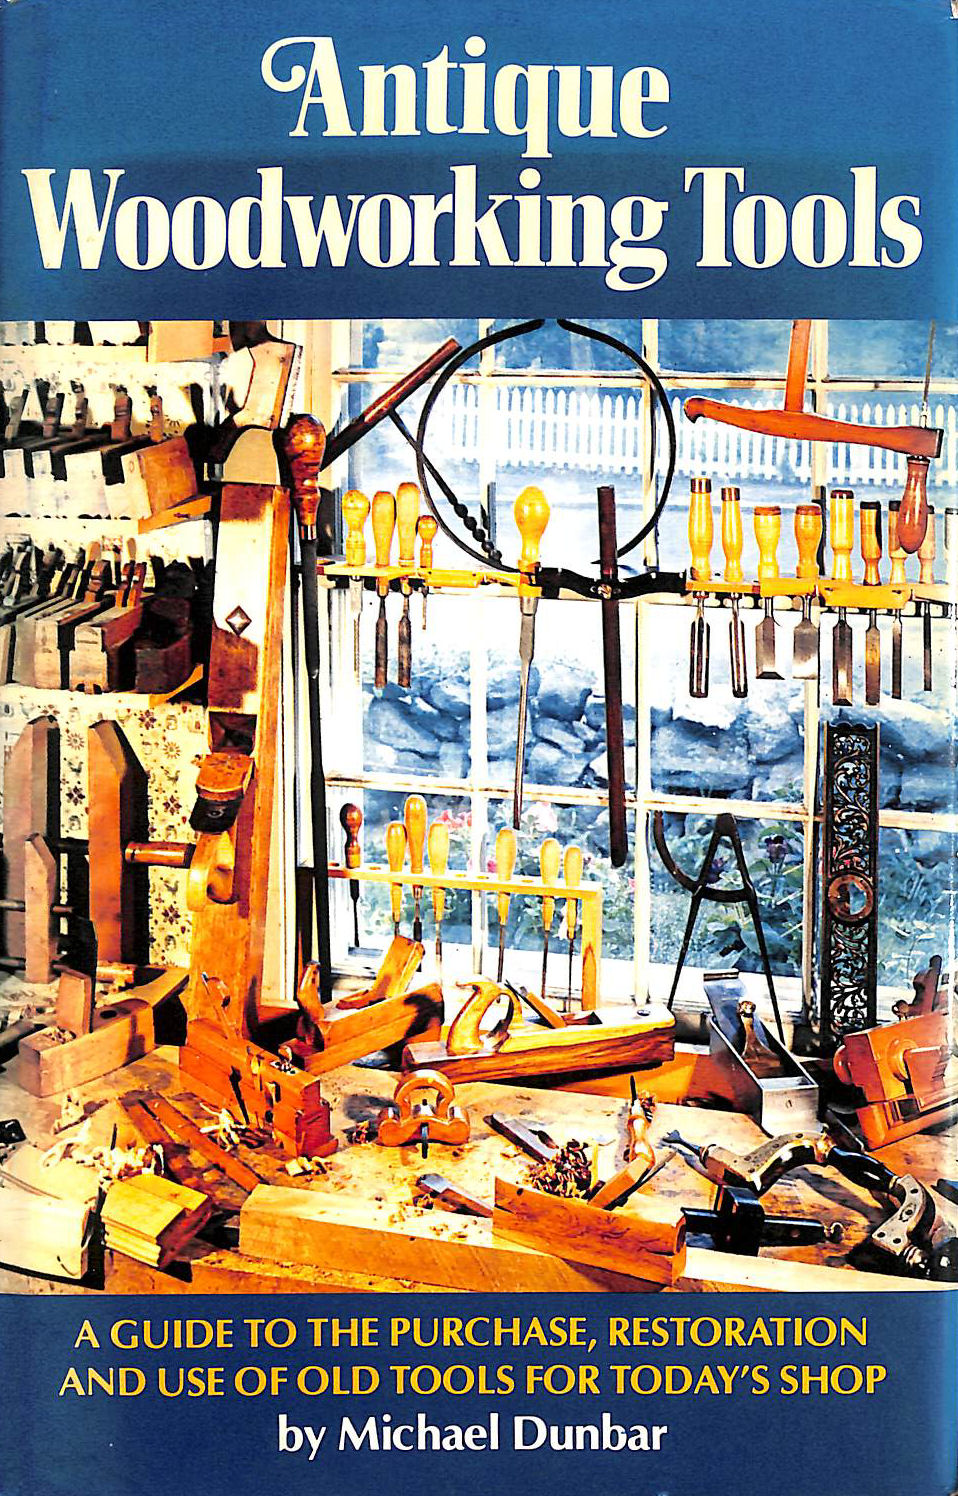 Image for Antique Woodworking Tools: A Guide to the Purchase, Restoration and Use of Old Tools for Today's Shop